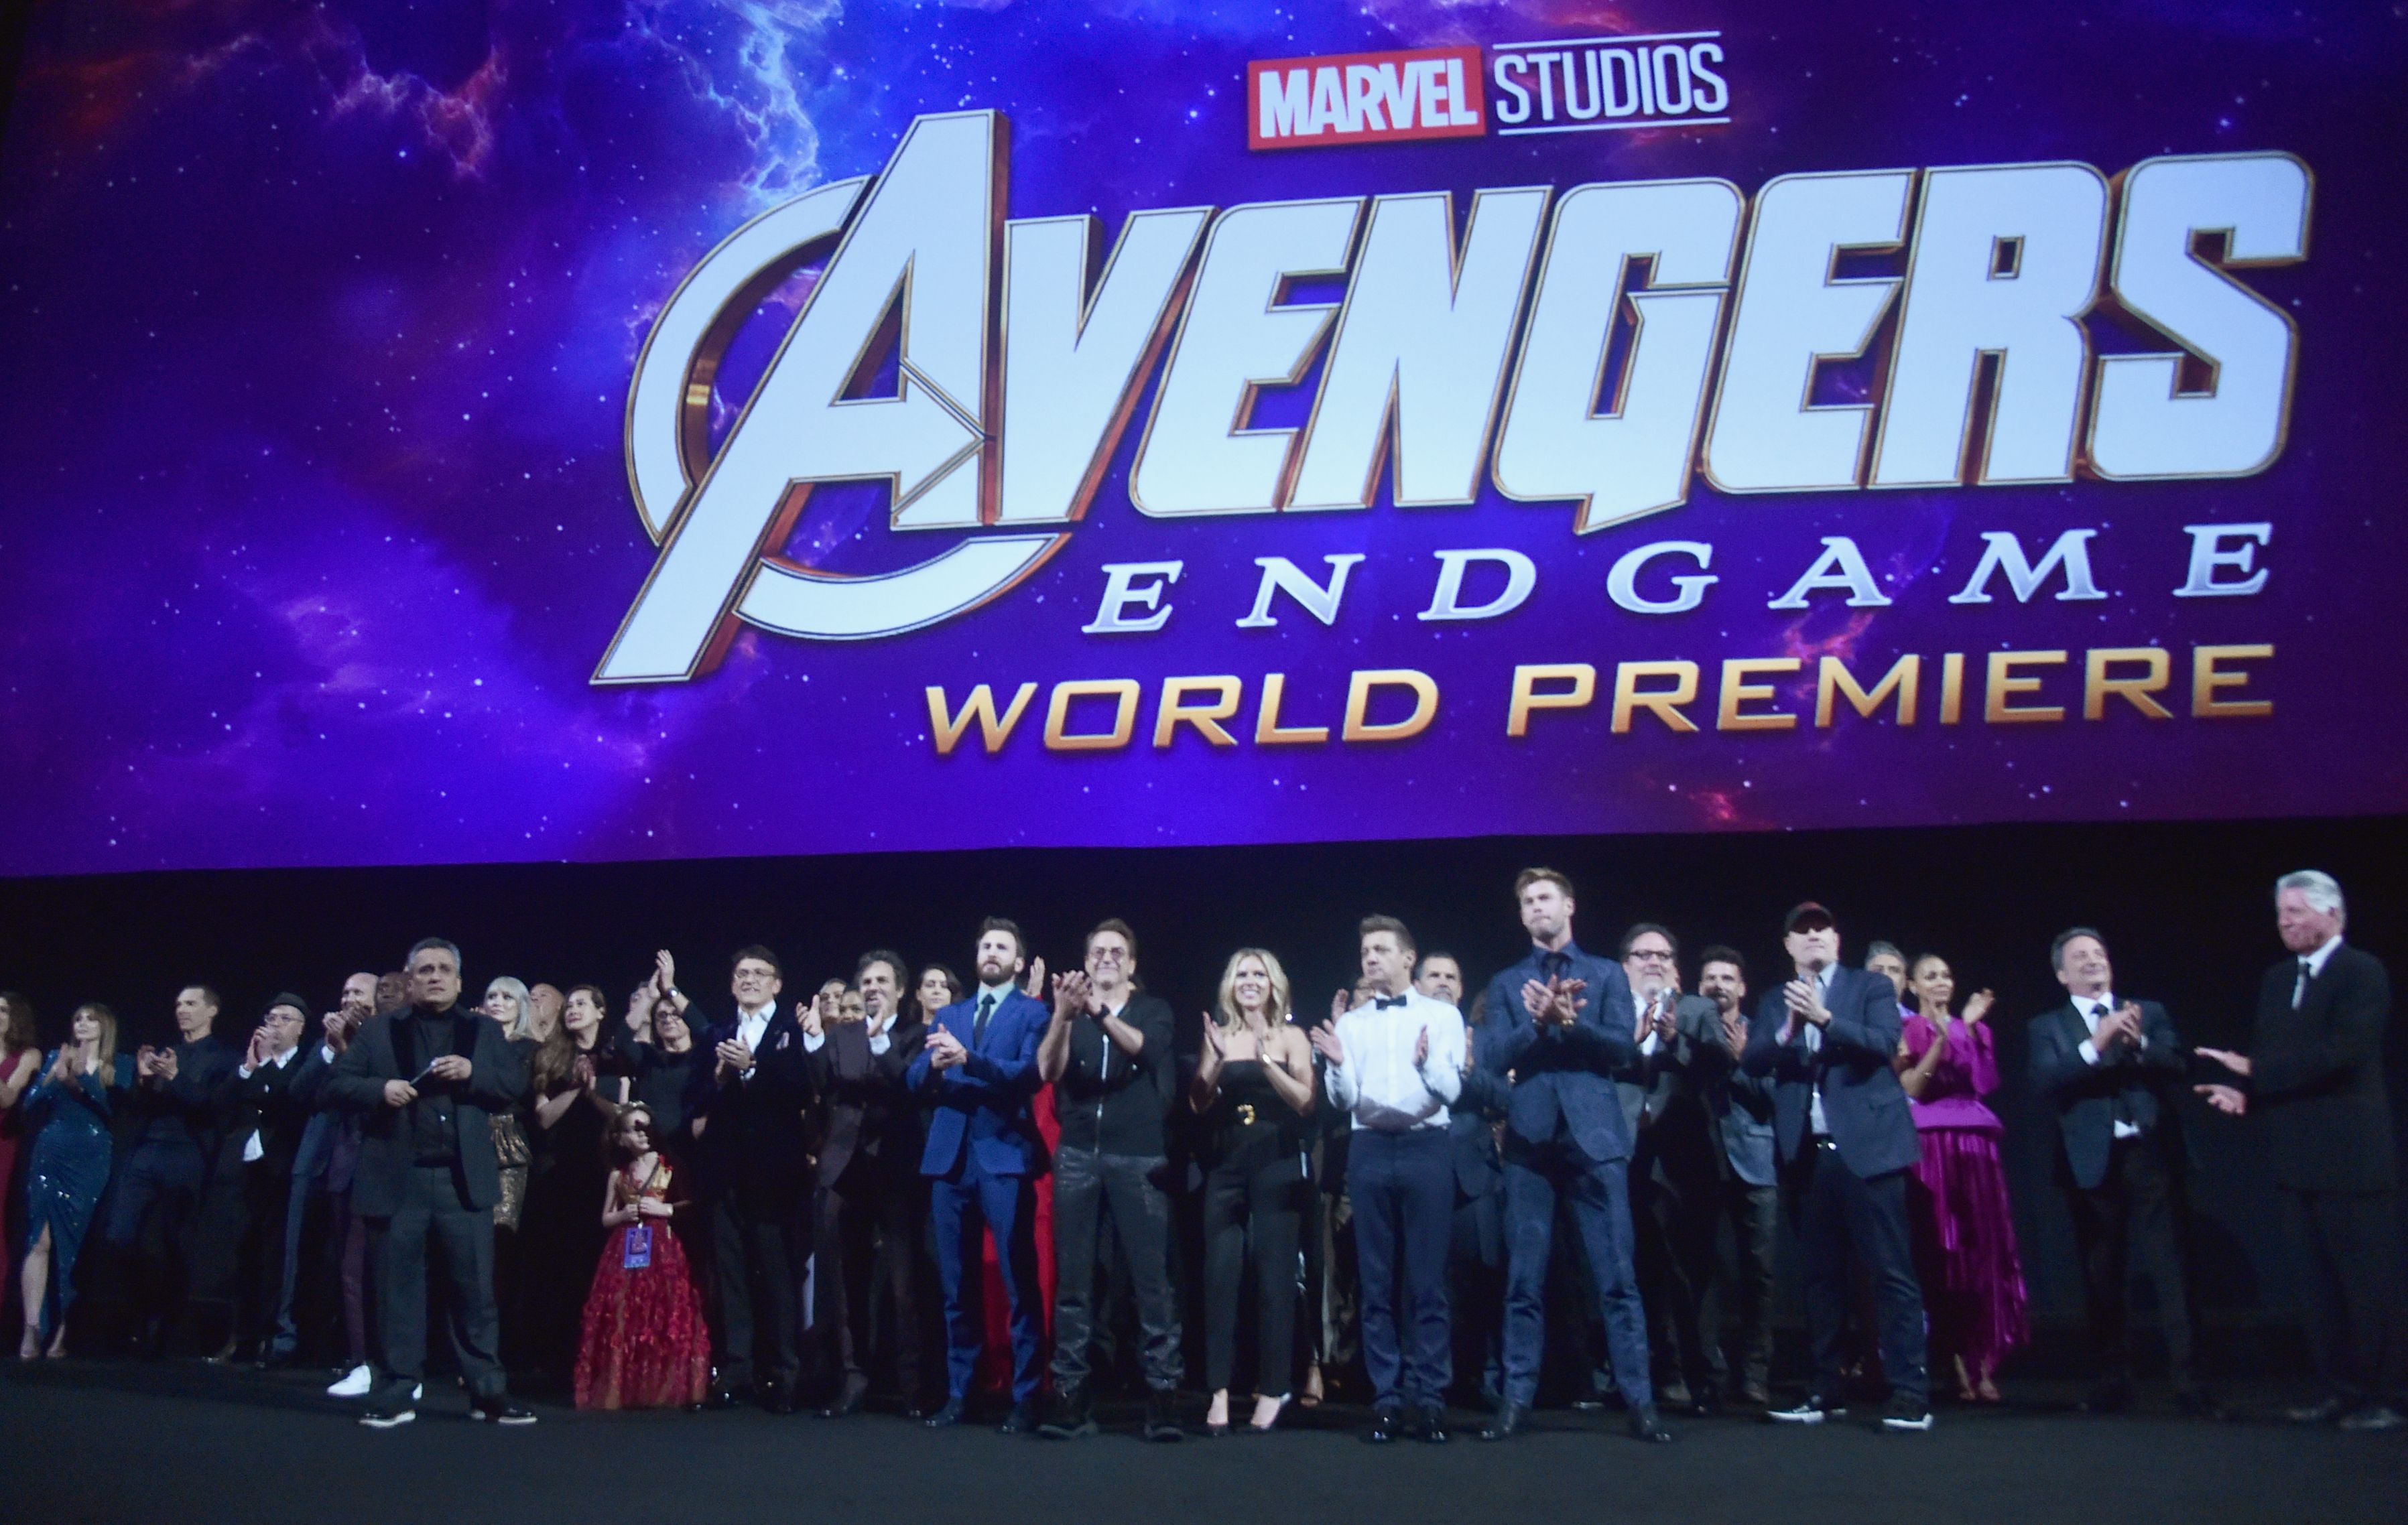 Marvel Cinematic Universe to feature LGBT characters in